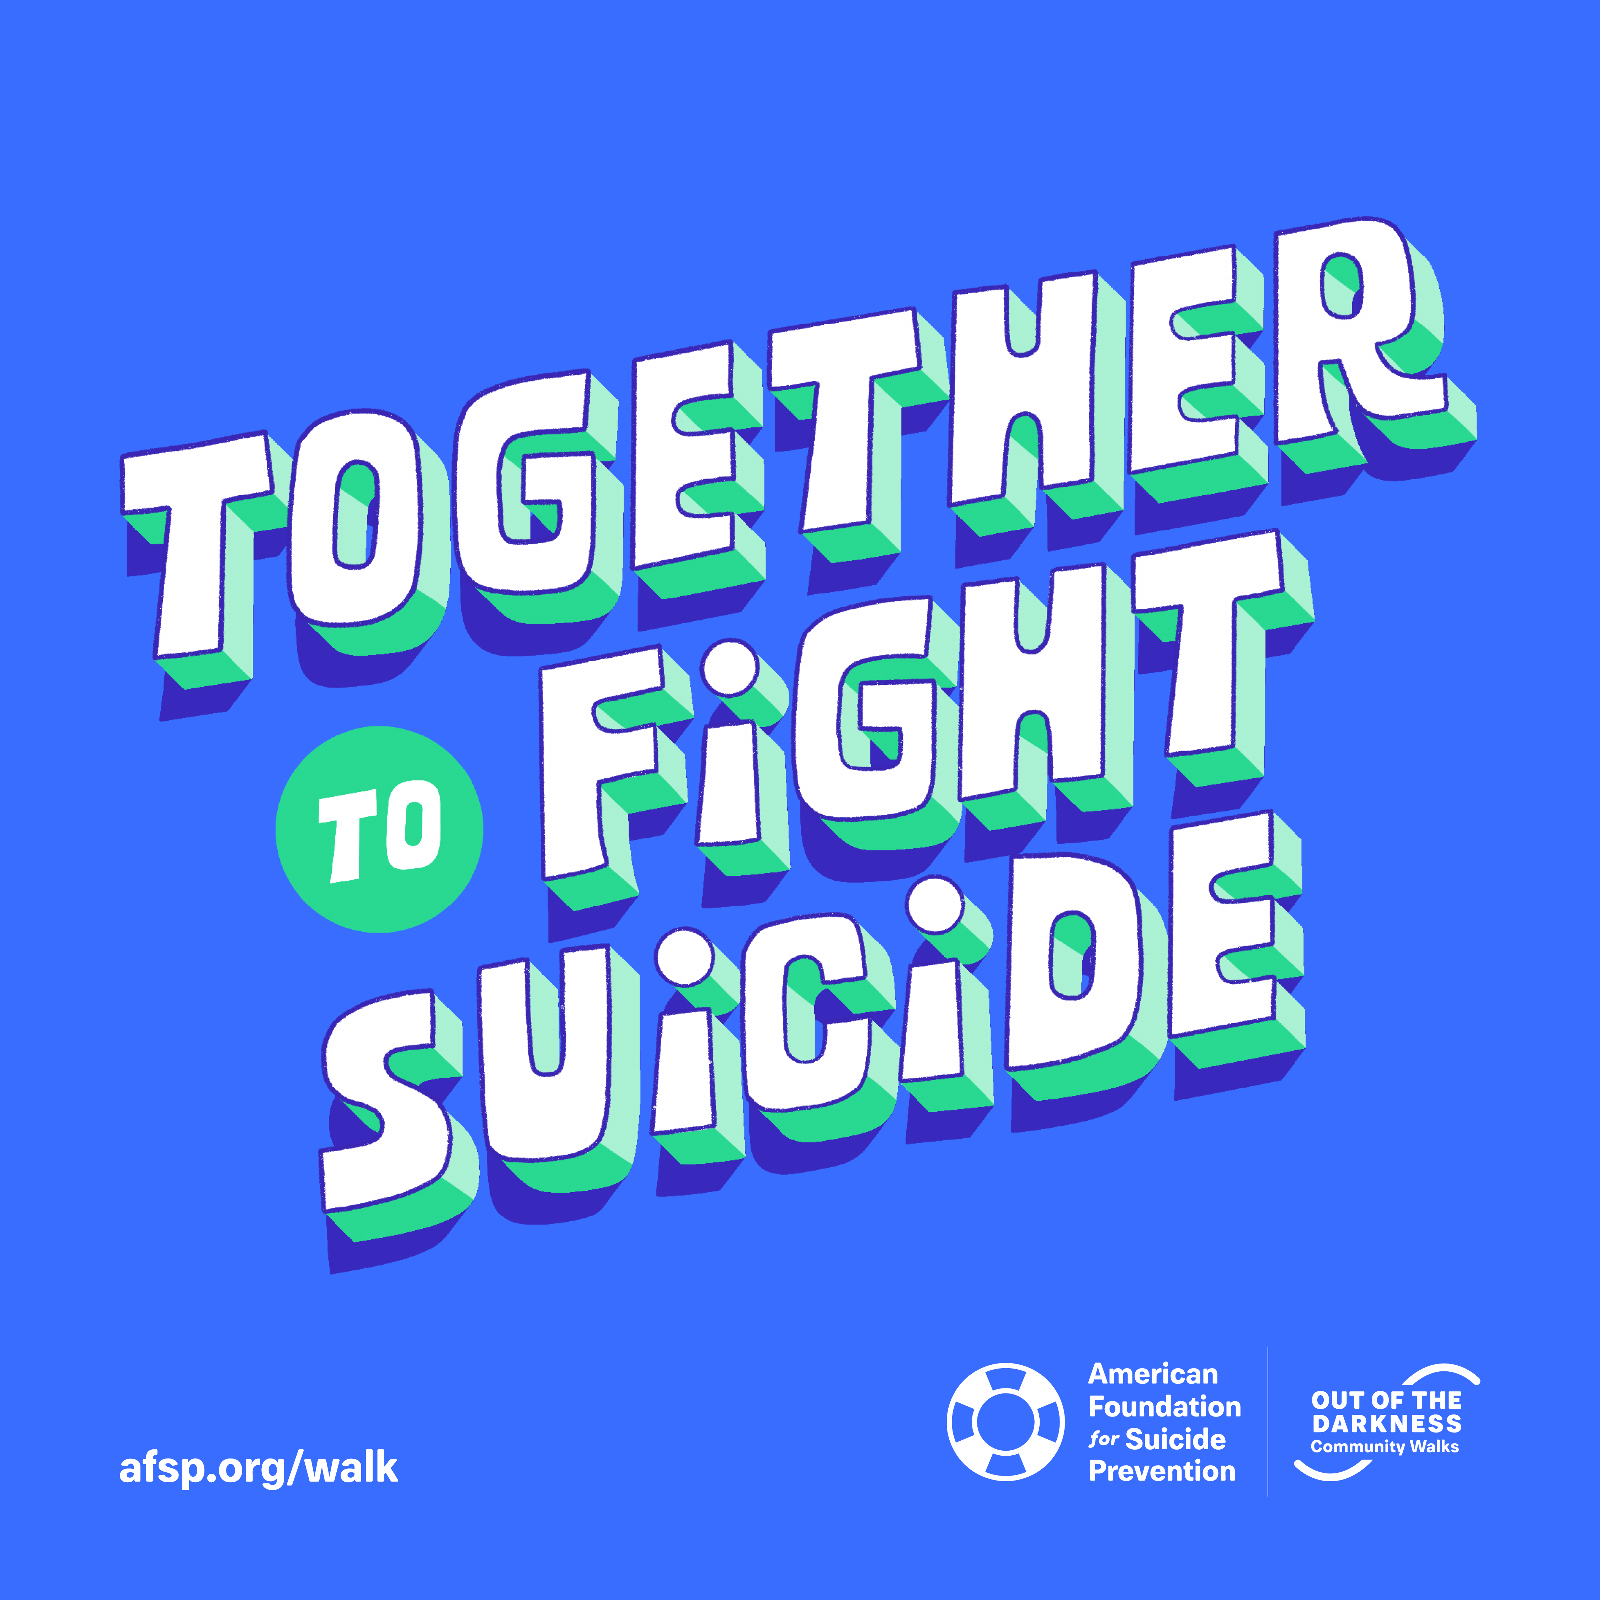 Together to Fight Suicide